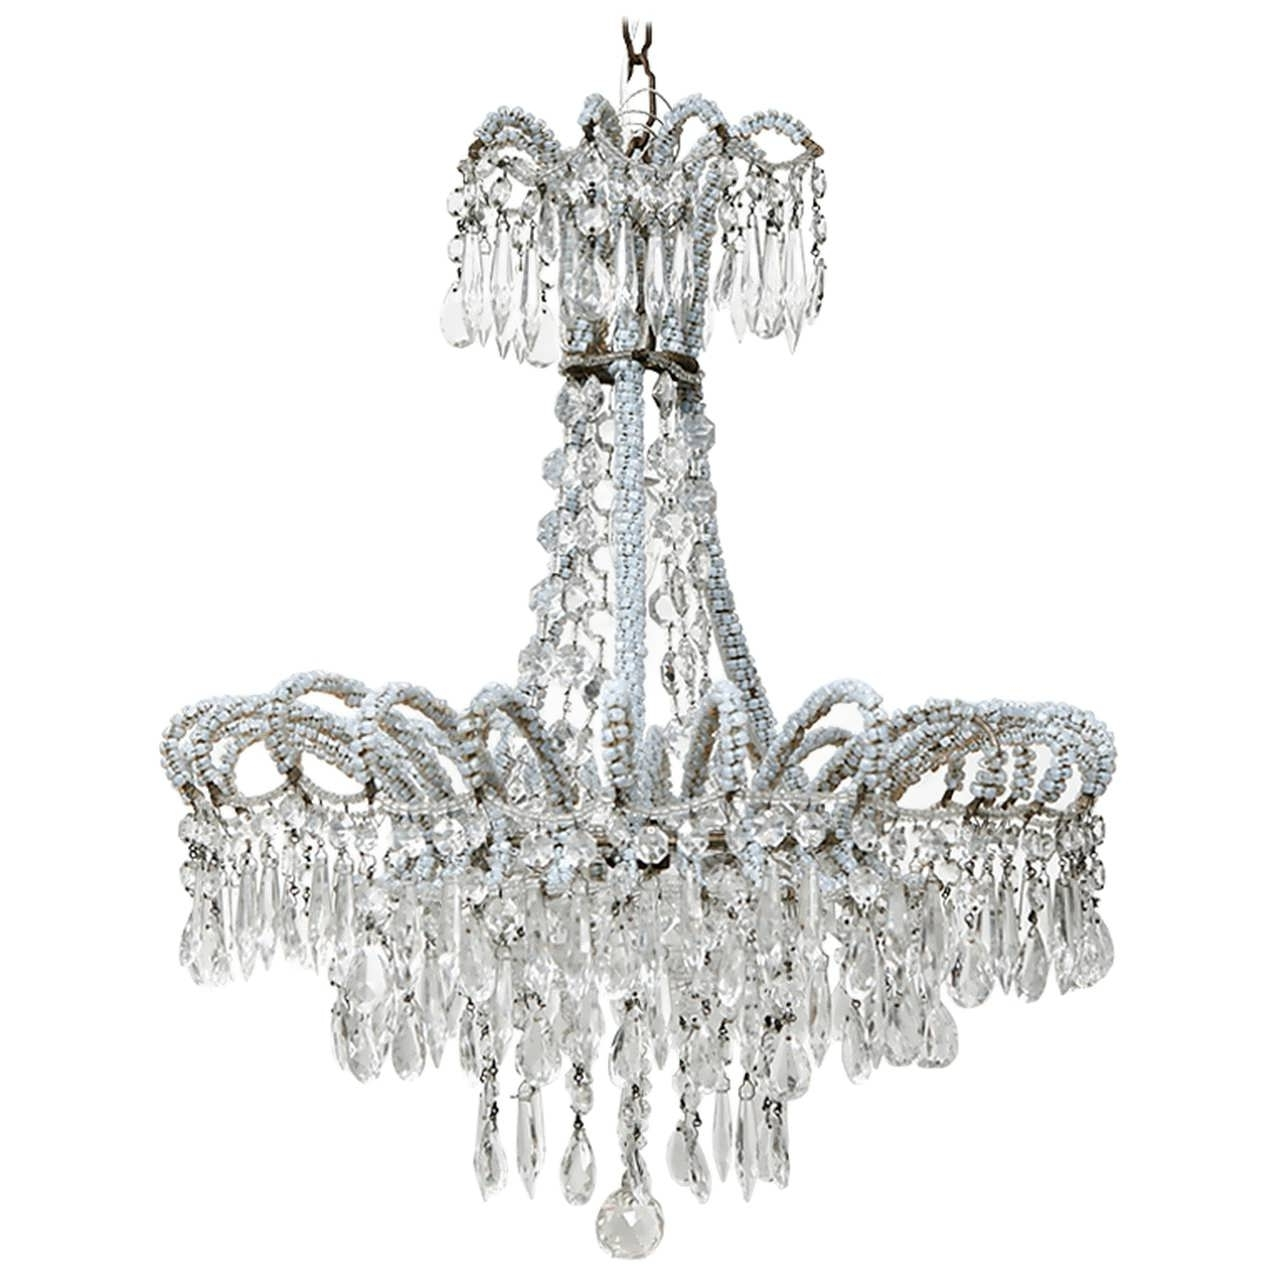 Italian Chandeliers Style Regarding Most Up To Date Chandelier : Orb Chandelier Candle Chandelier Italian Chandelier (View 12 of 15)